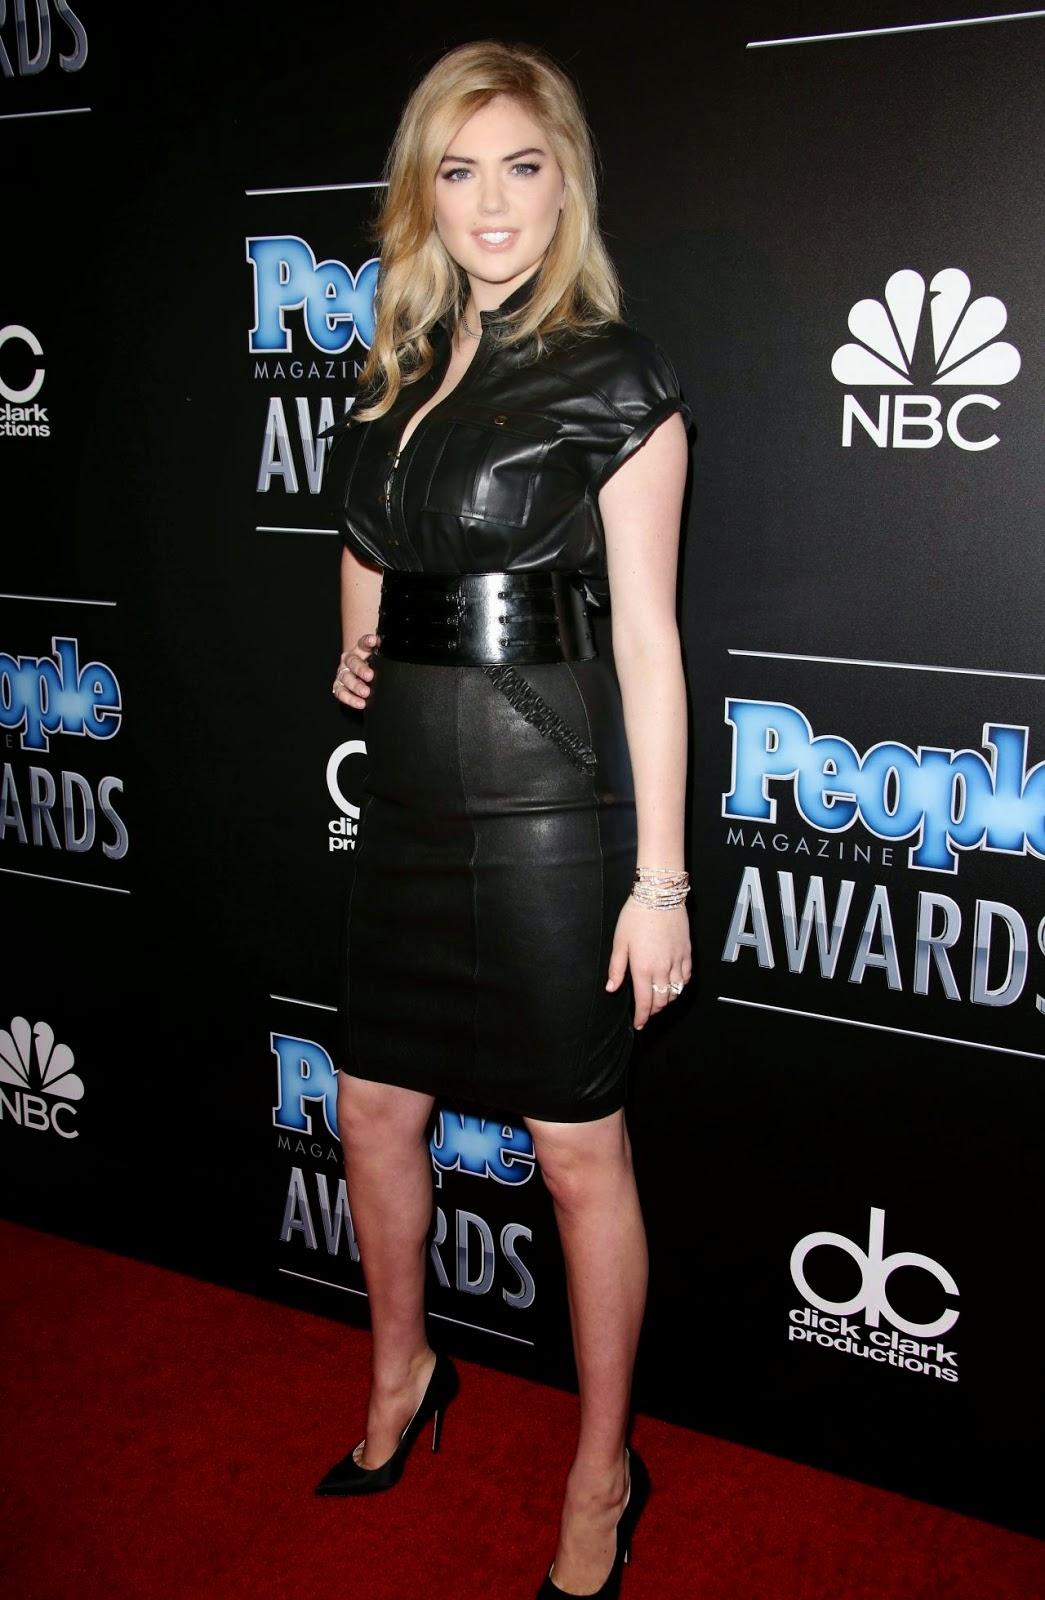 Kate Upton is named 'Sexiest Woman' at the 2014